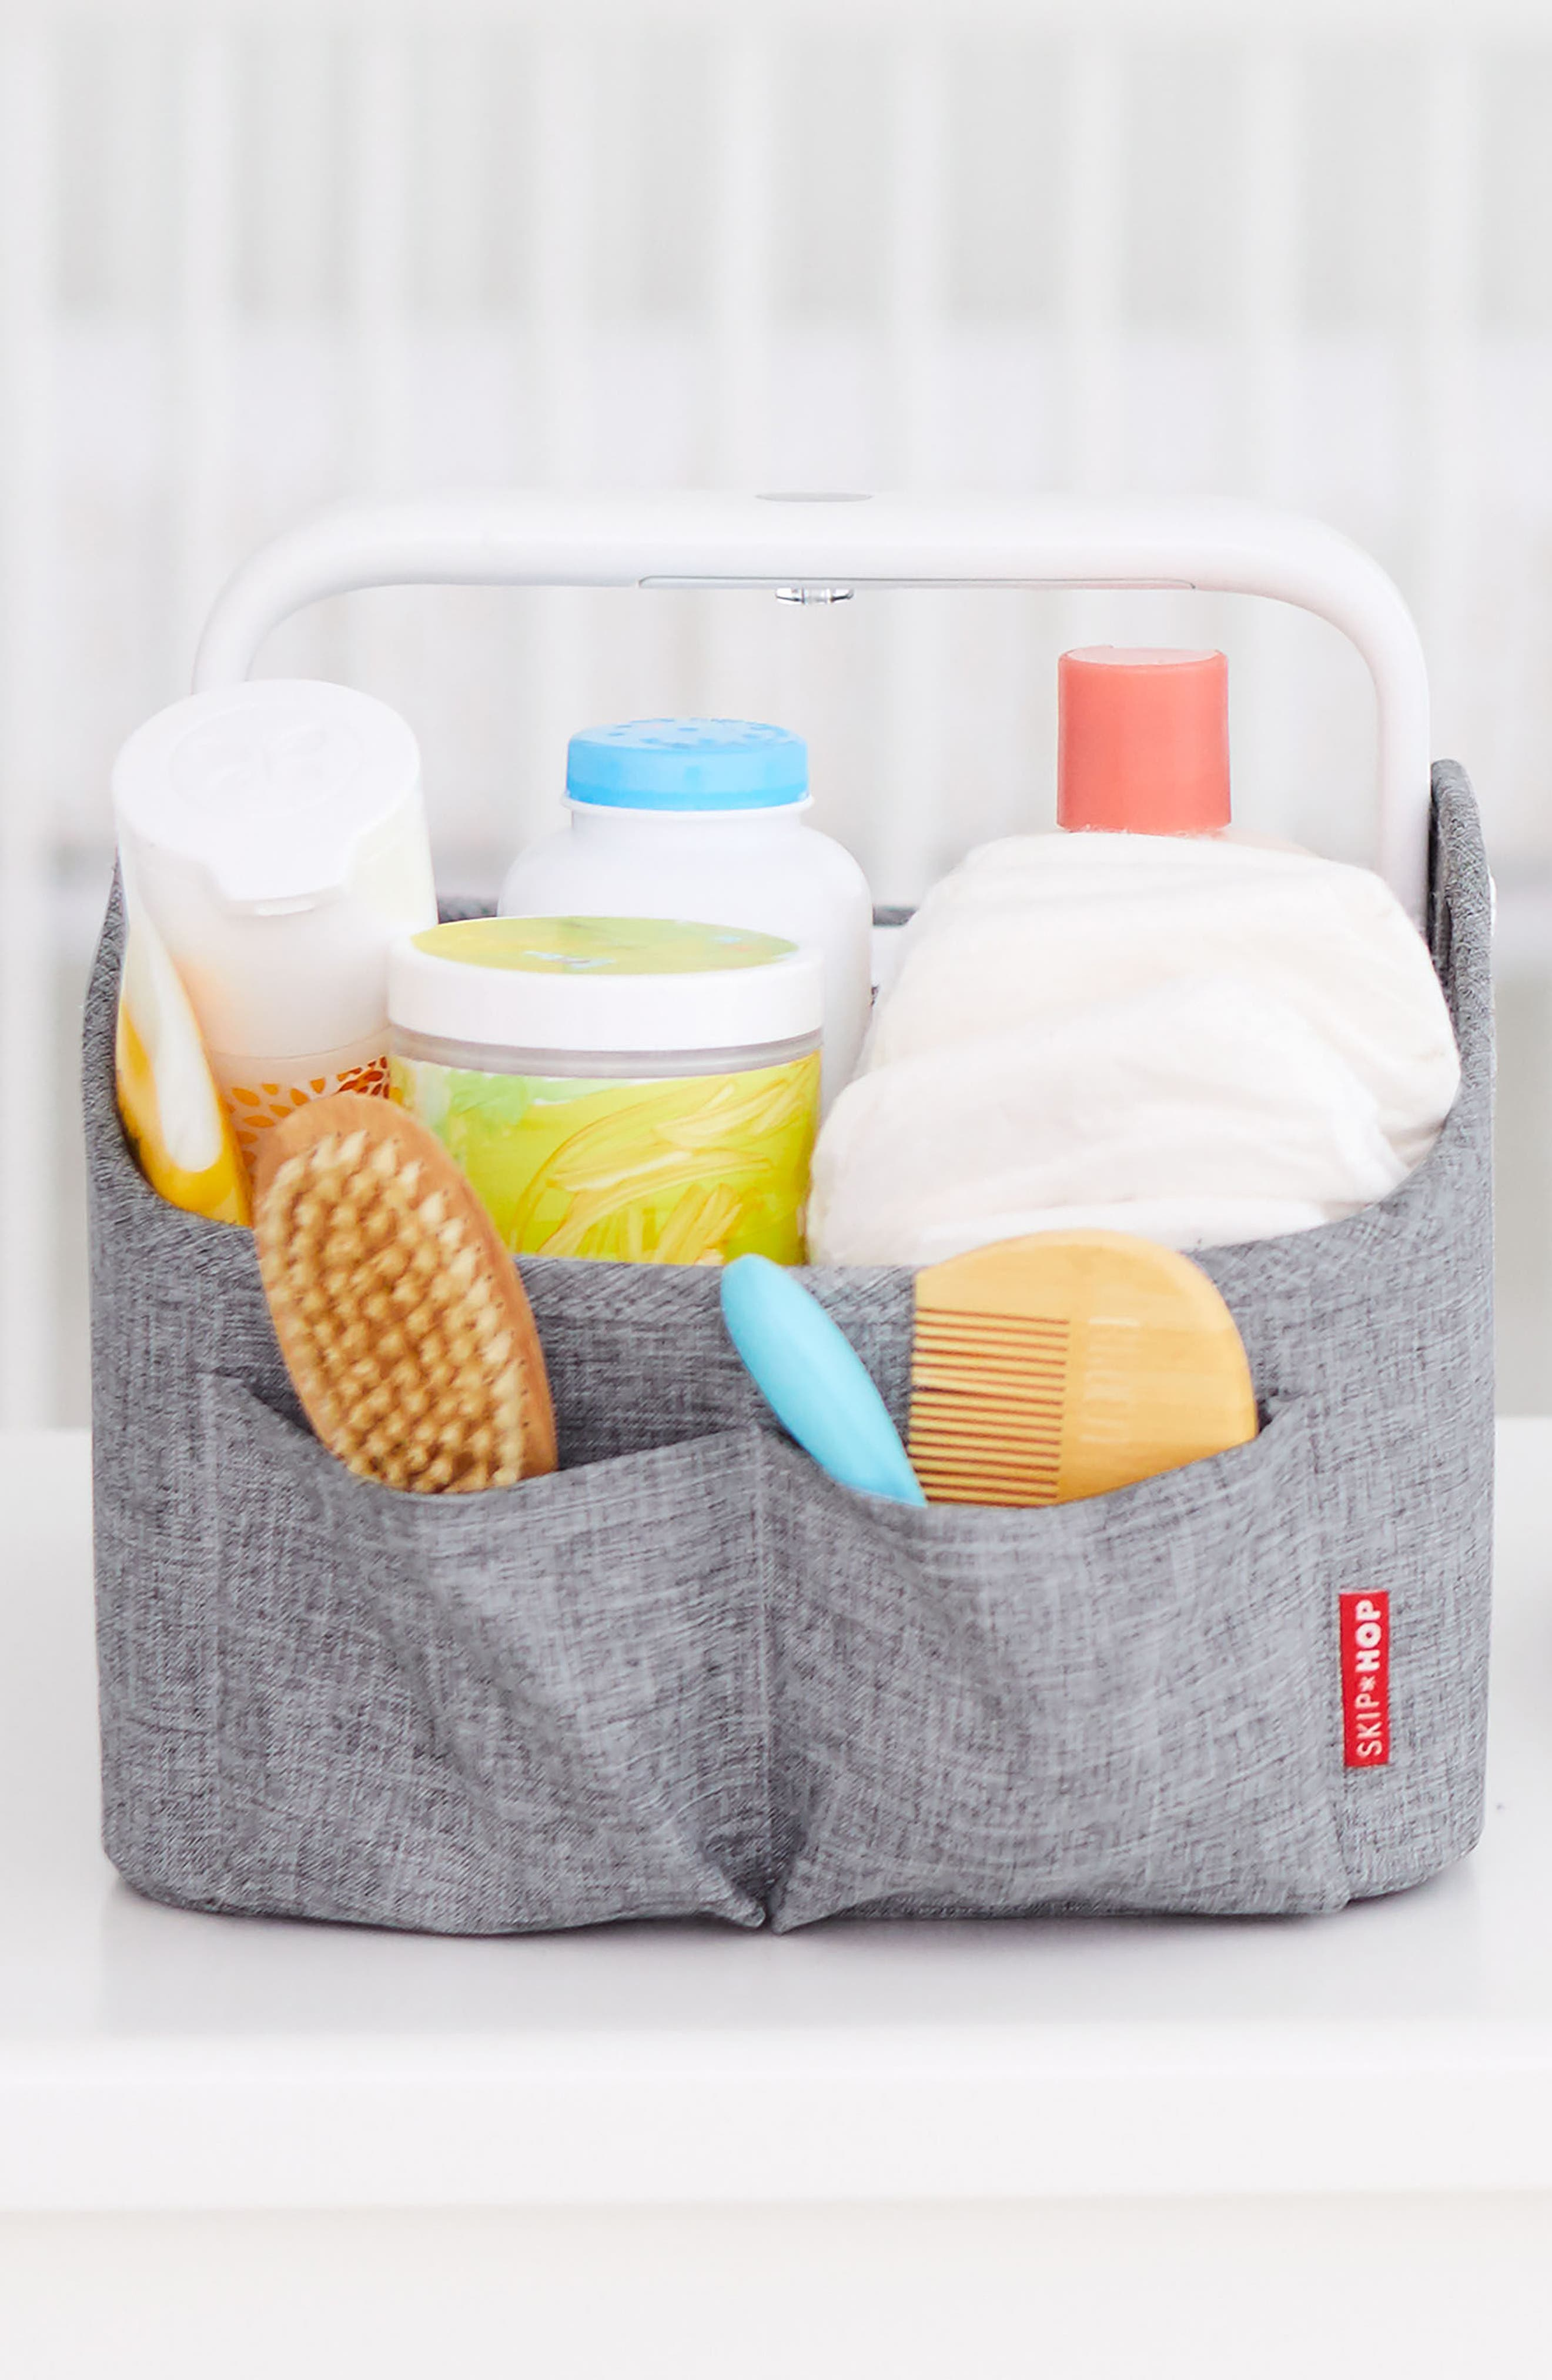 Light Up Diaper Caddy,                             Alternate thumbnail 2, color,                             HEATHER GREY